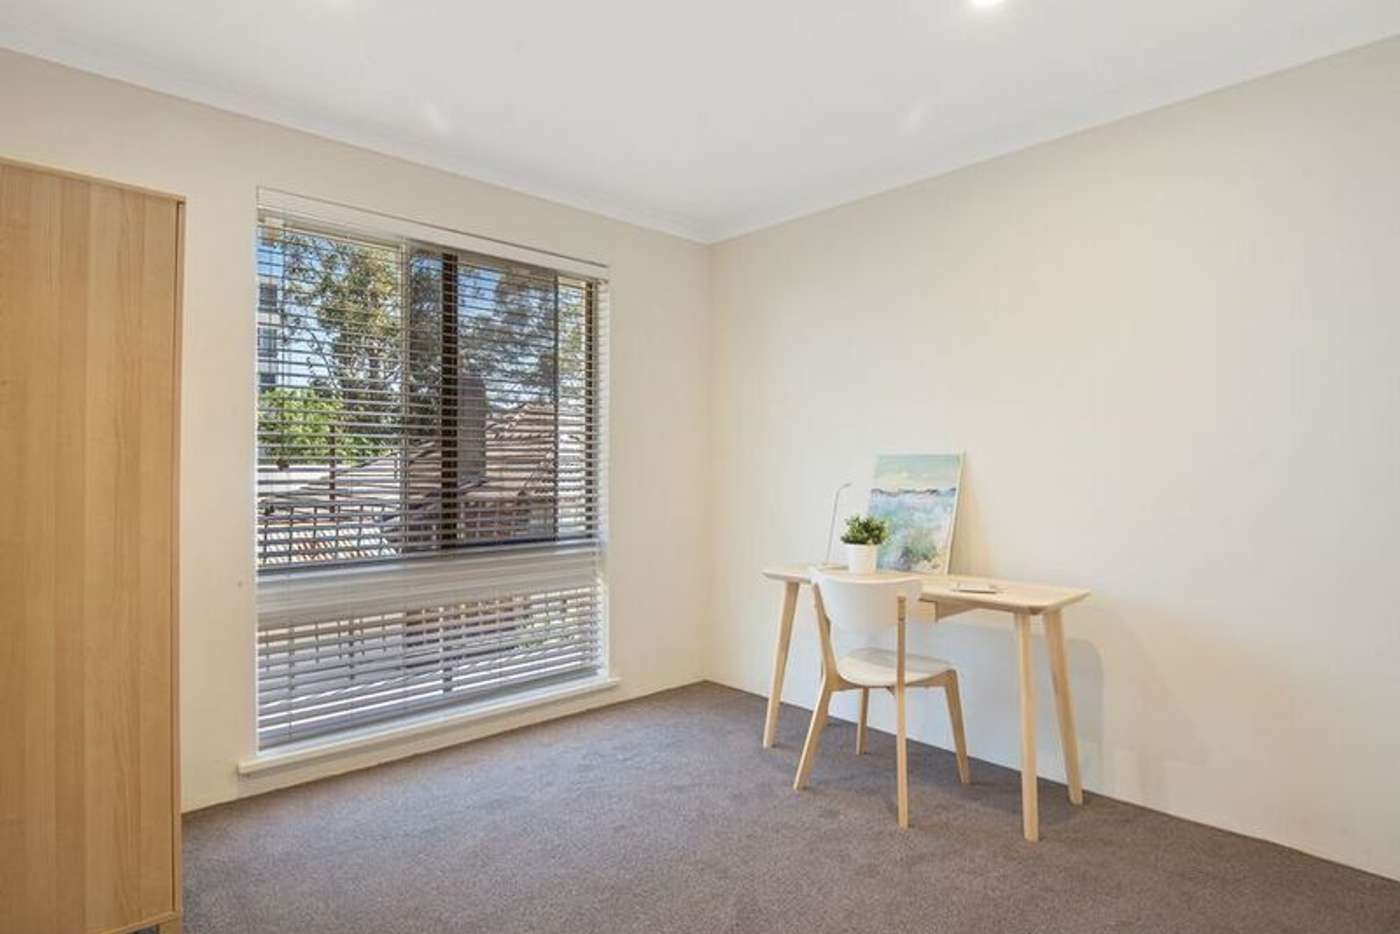 Sixth view of Homely apartment listing, 11/147 Derby Road, Shenton Park WA 6008